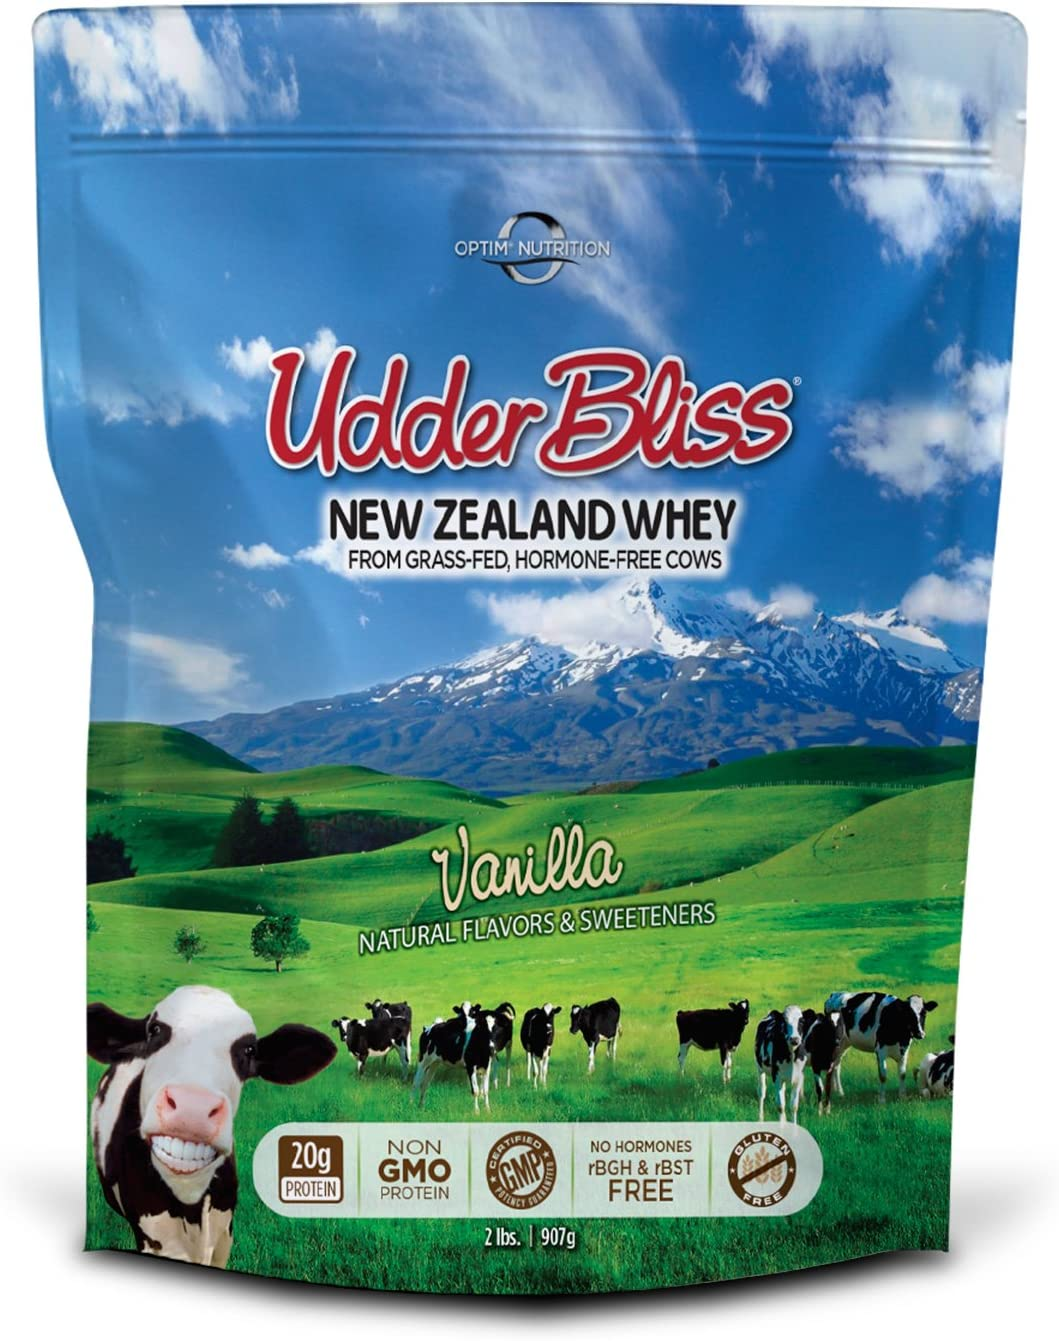 Optim Nutrition Grass Fed, Hormone-Free Udder Bliss Whey Protein Powder, Vanilla (2 Pounds)